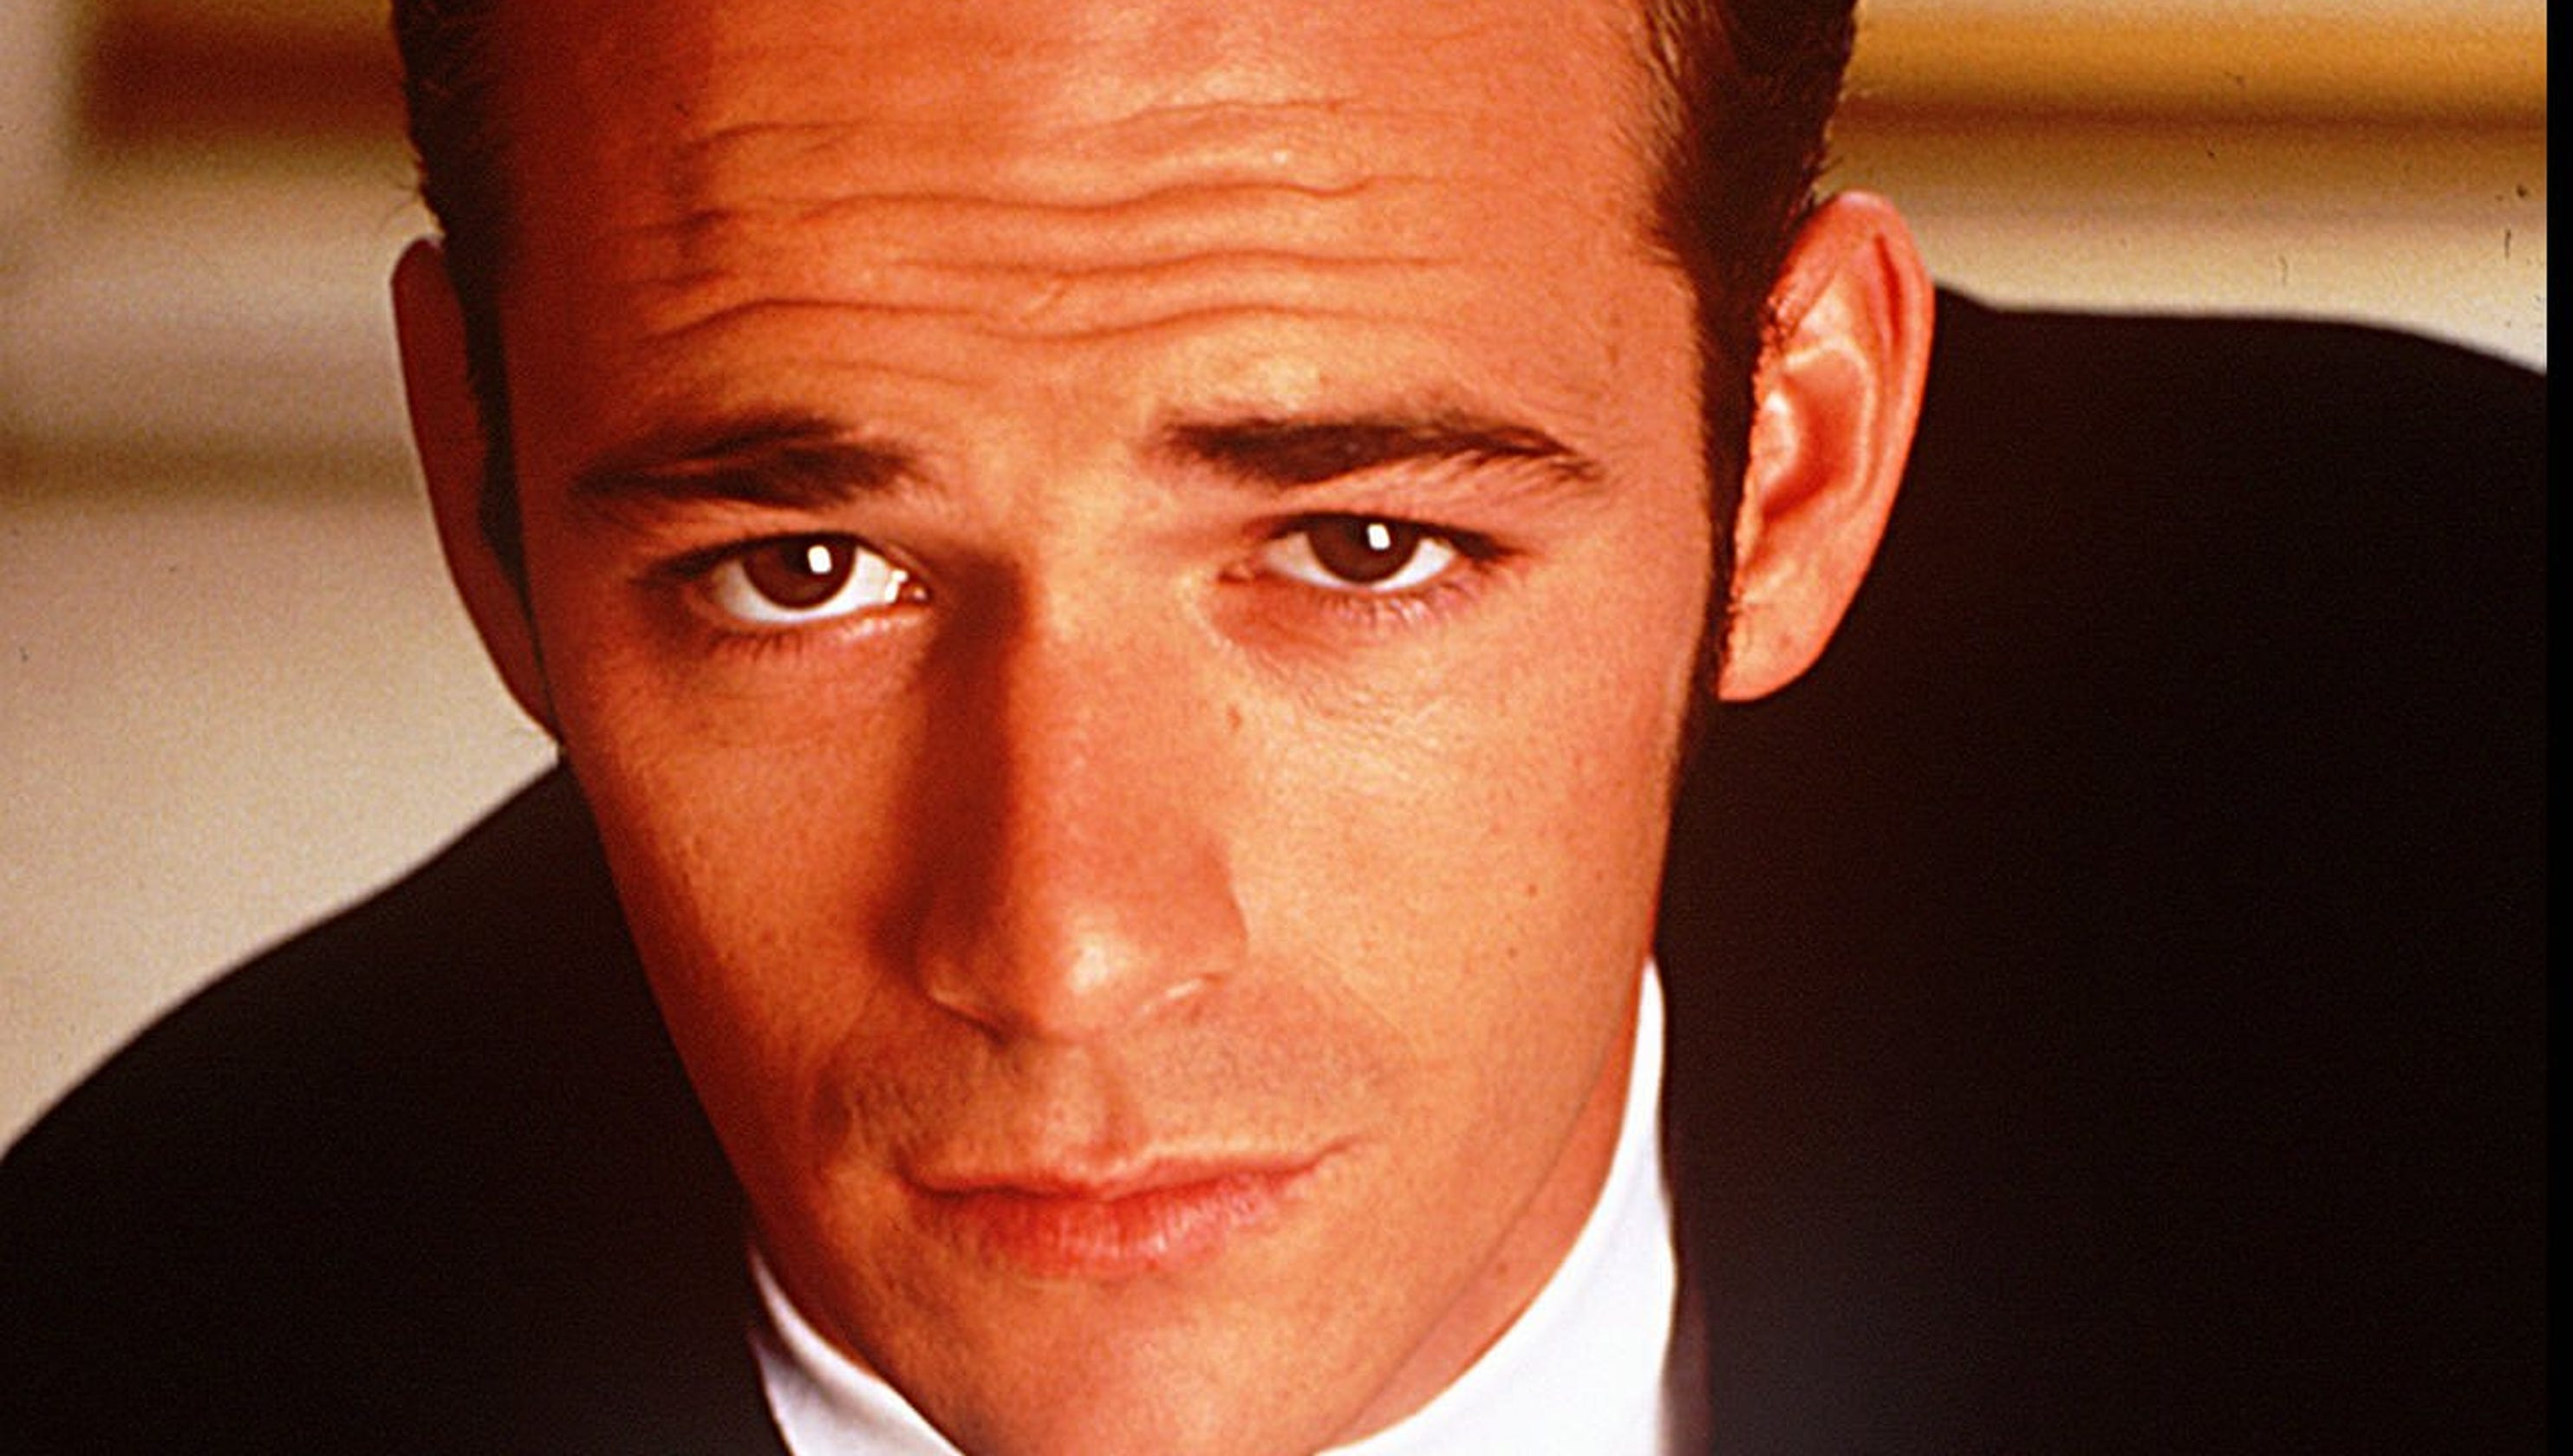 a0769424 Luke Perry: Why you're taking the '90210' star's death so hard